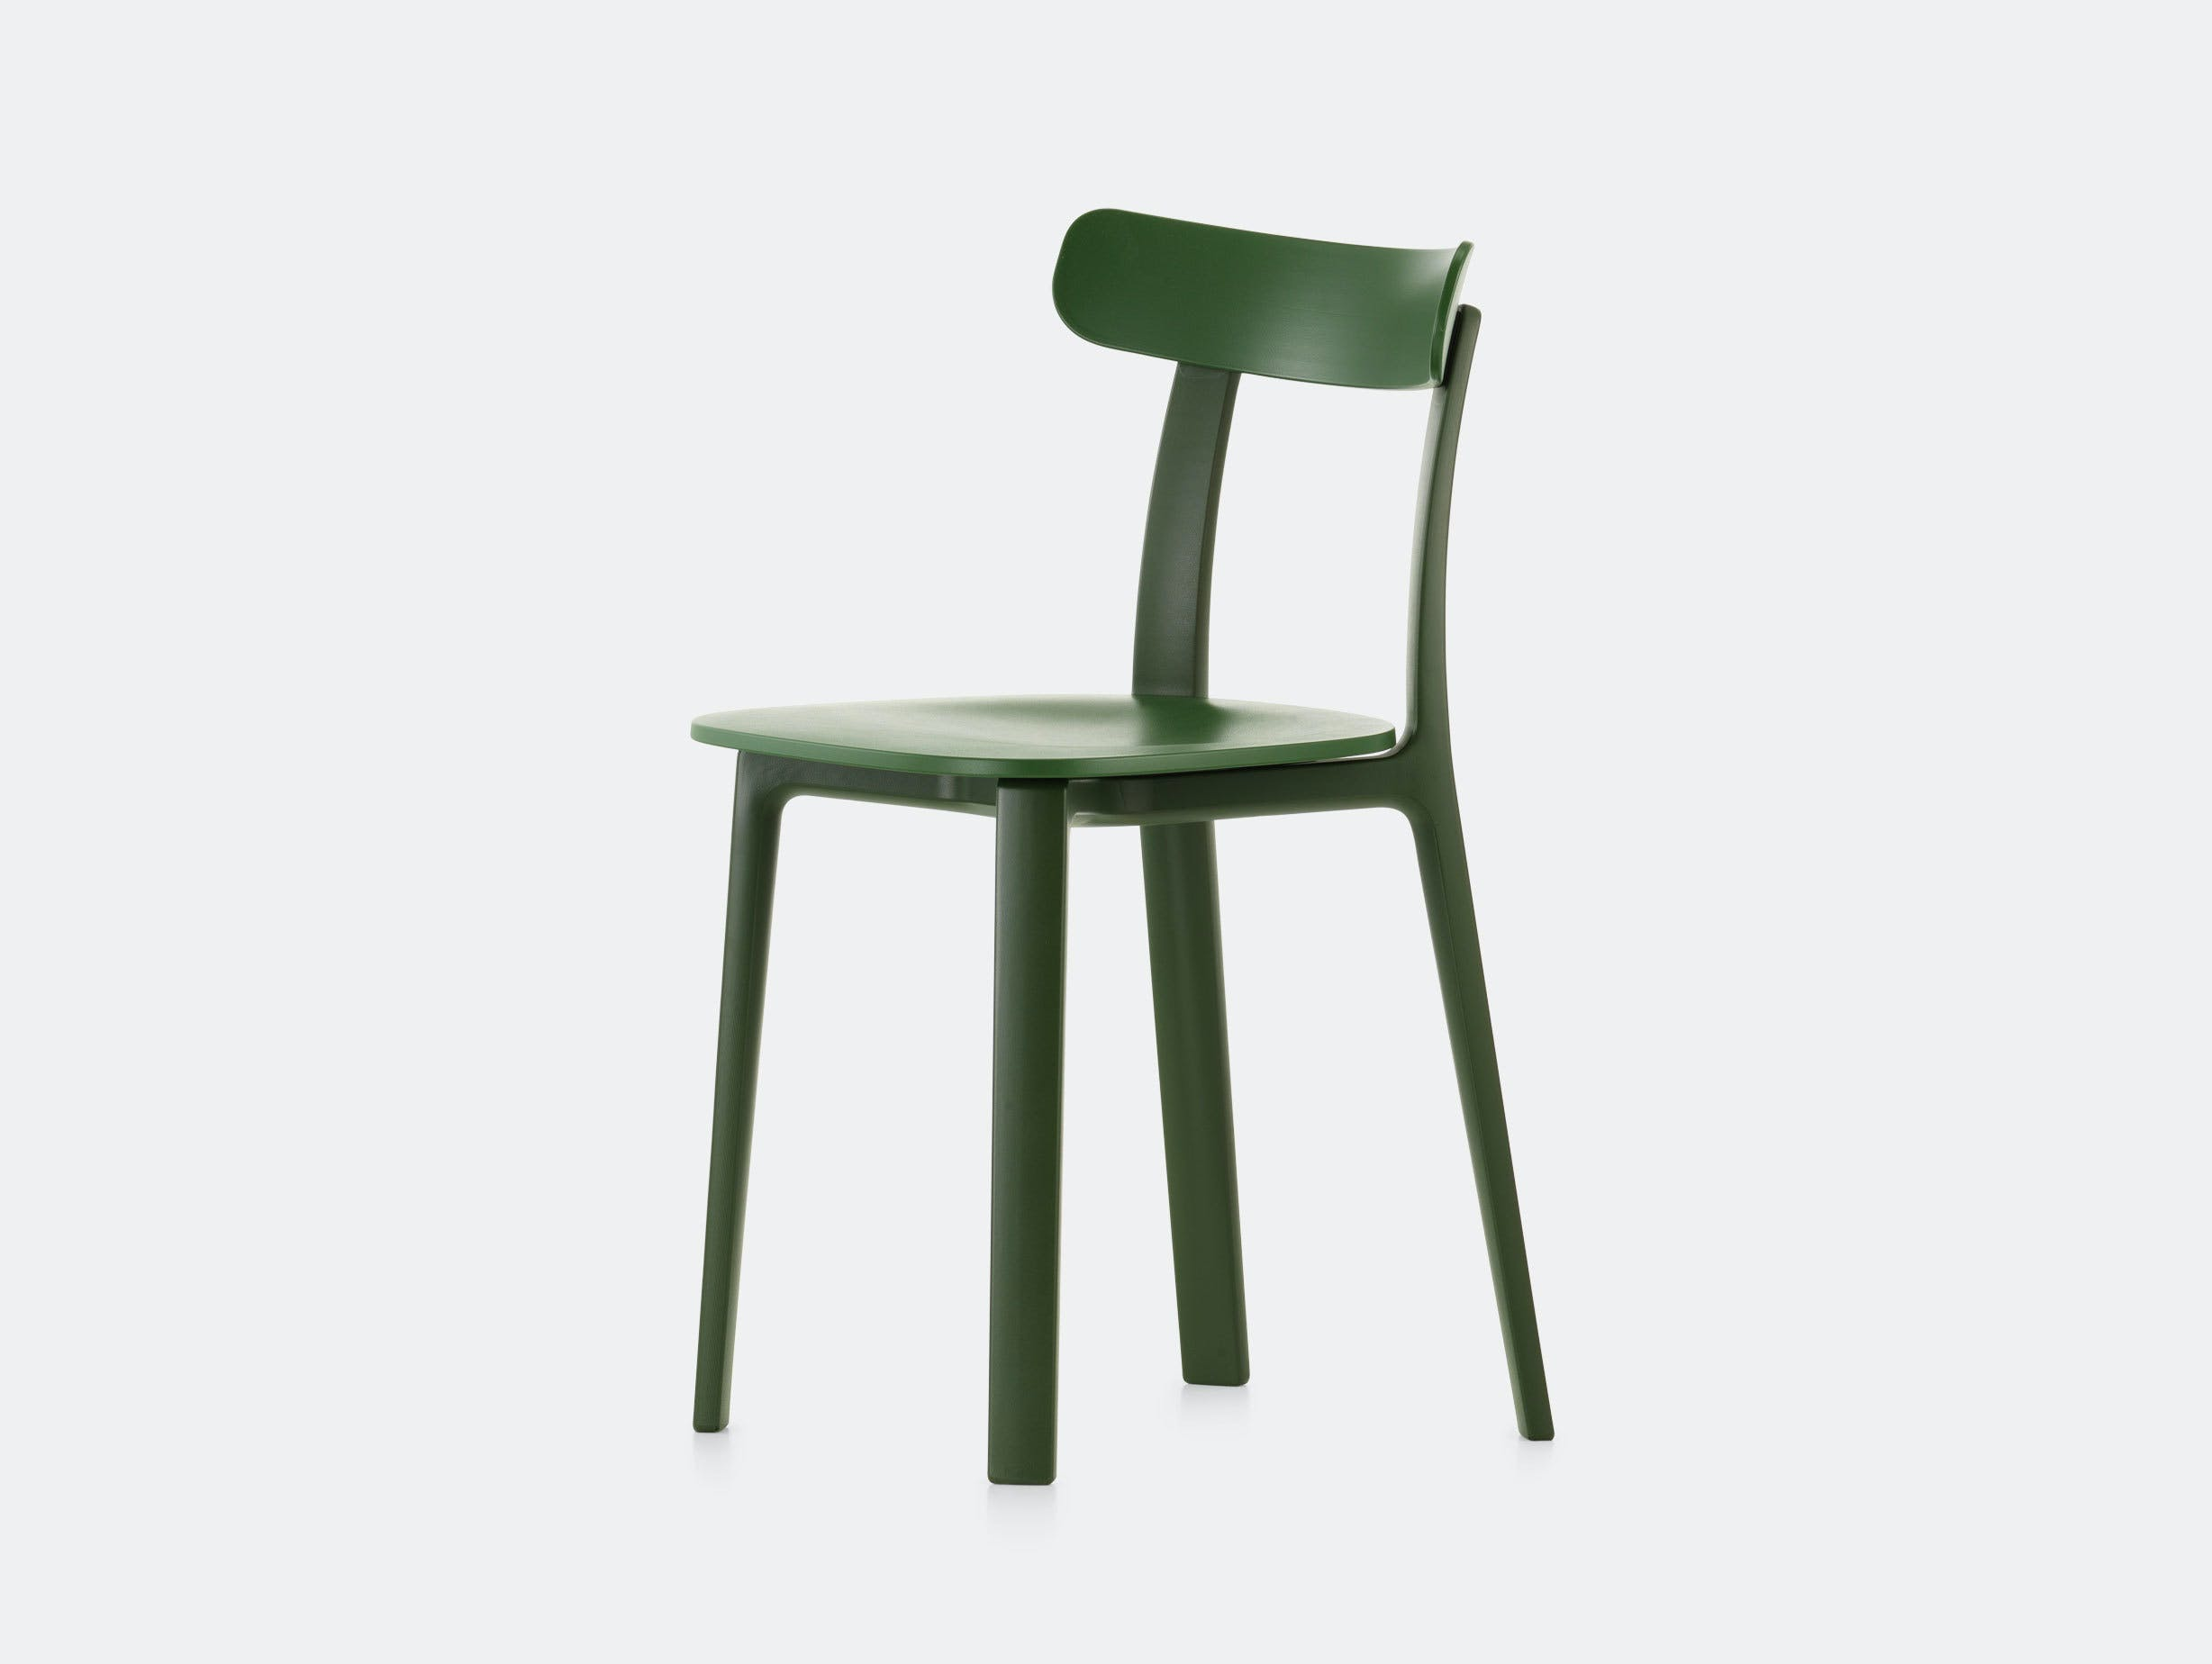 All Plastic Chair image